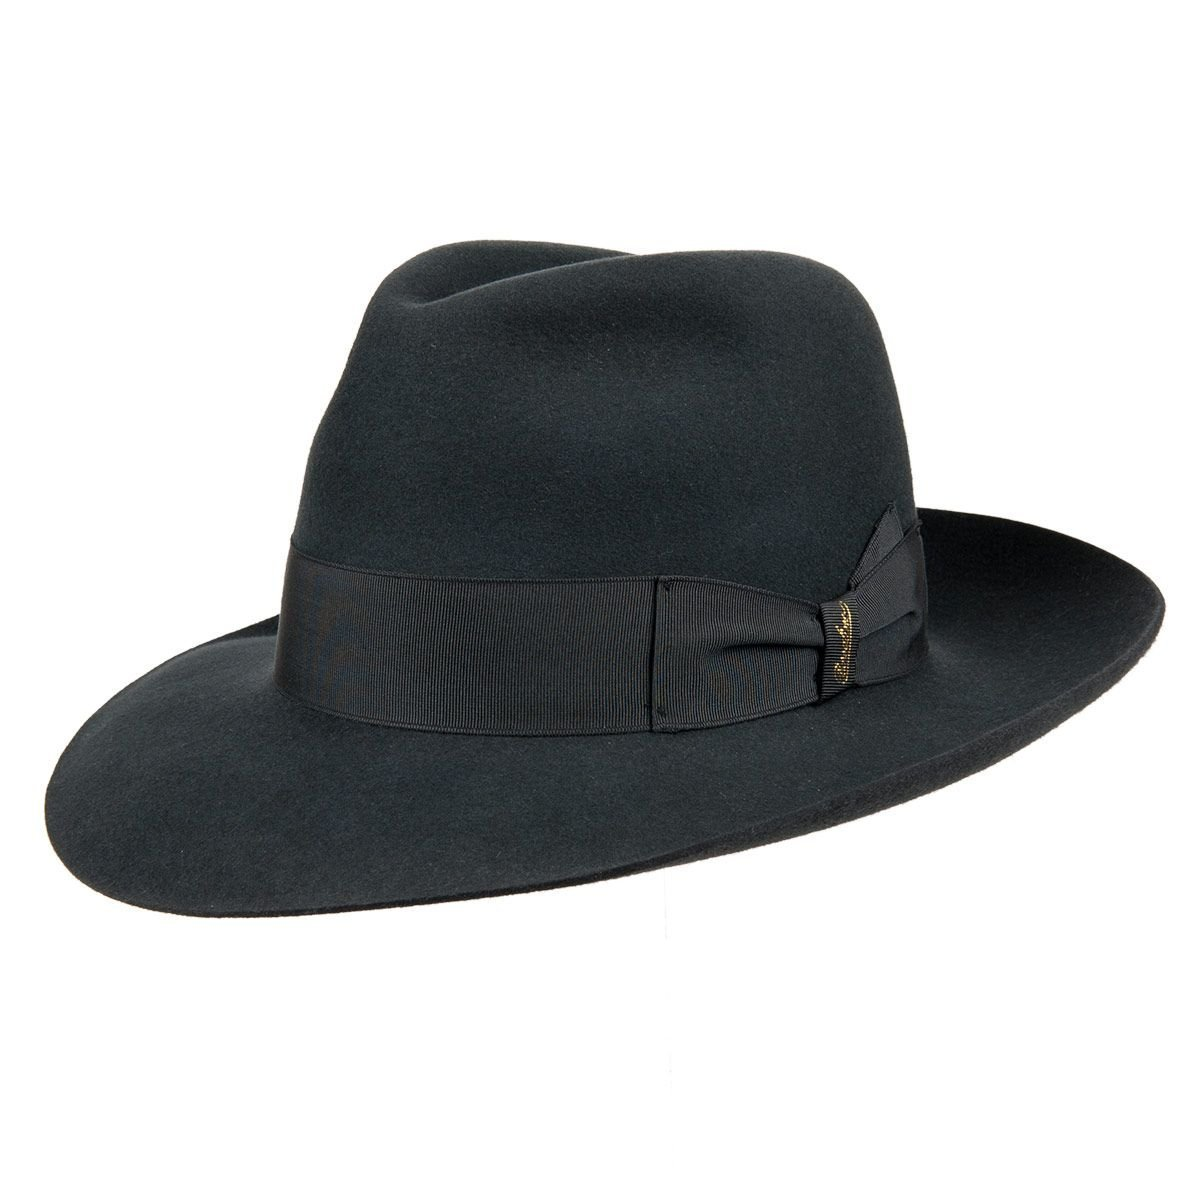 a79c4439 Classic Borsalino fedora with large brim